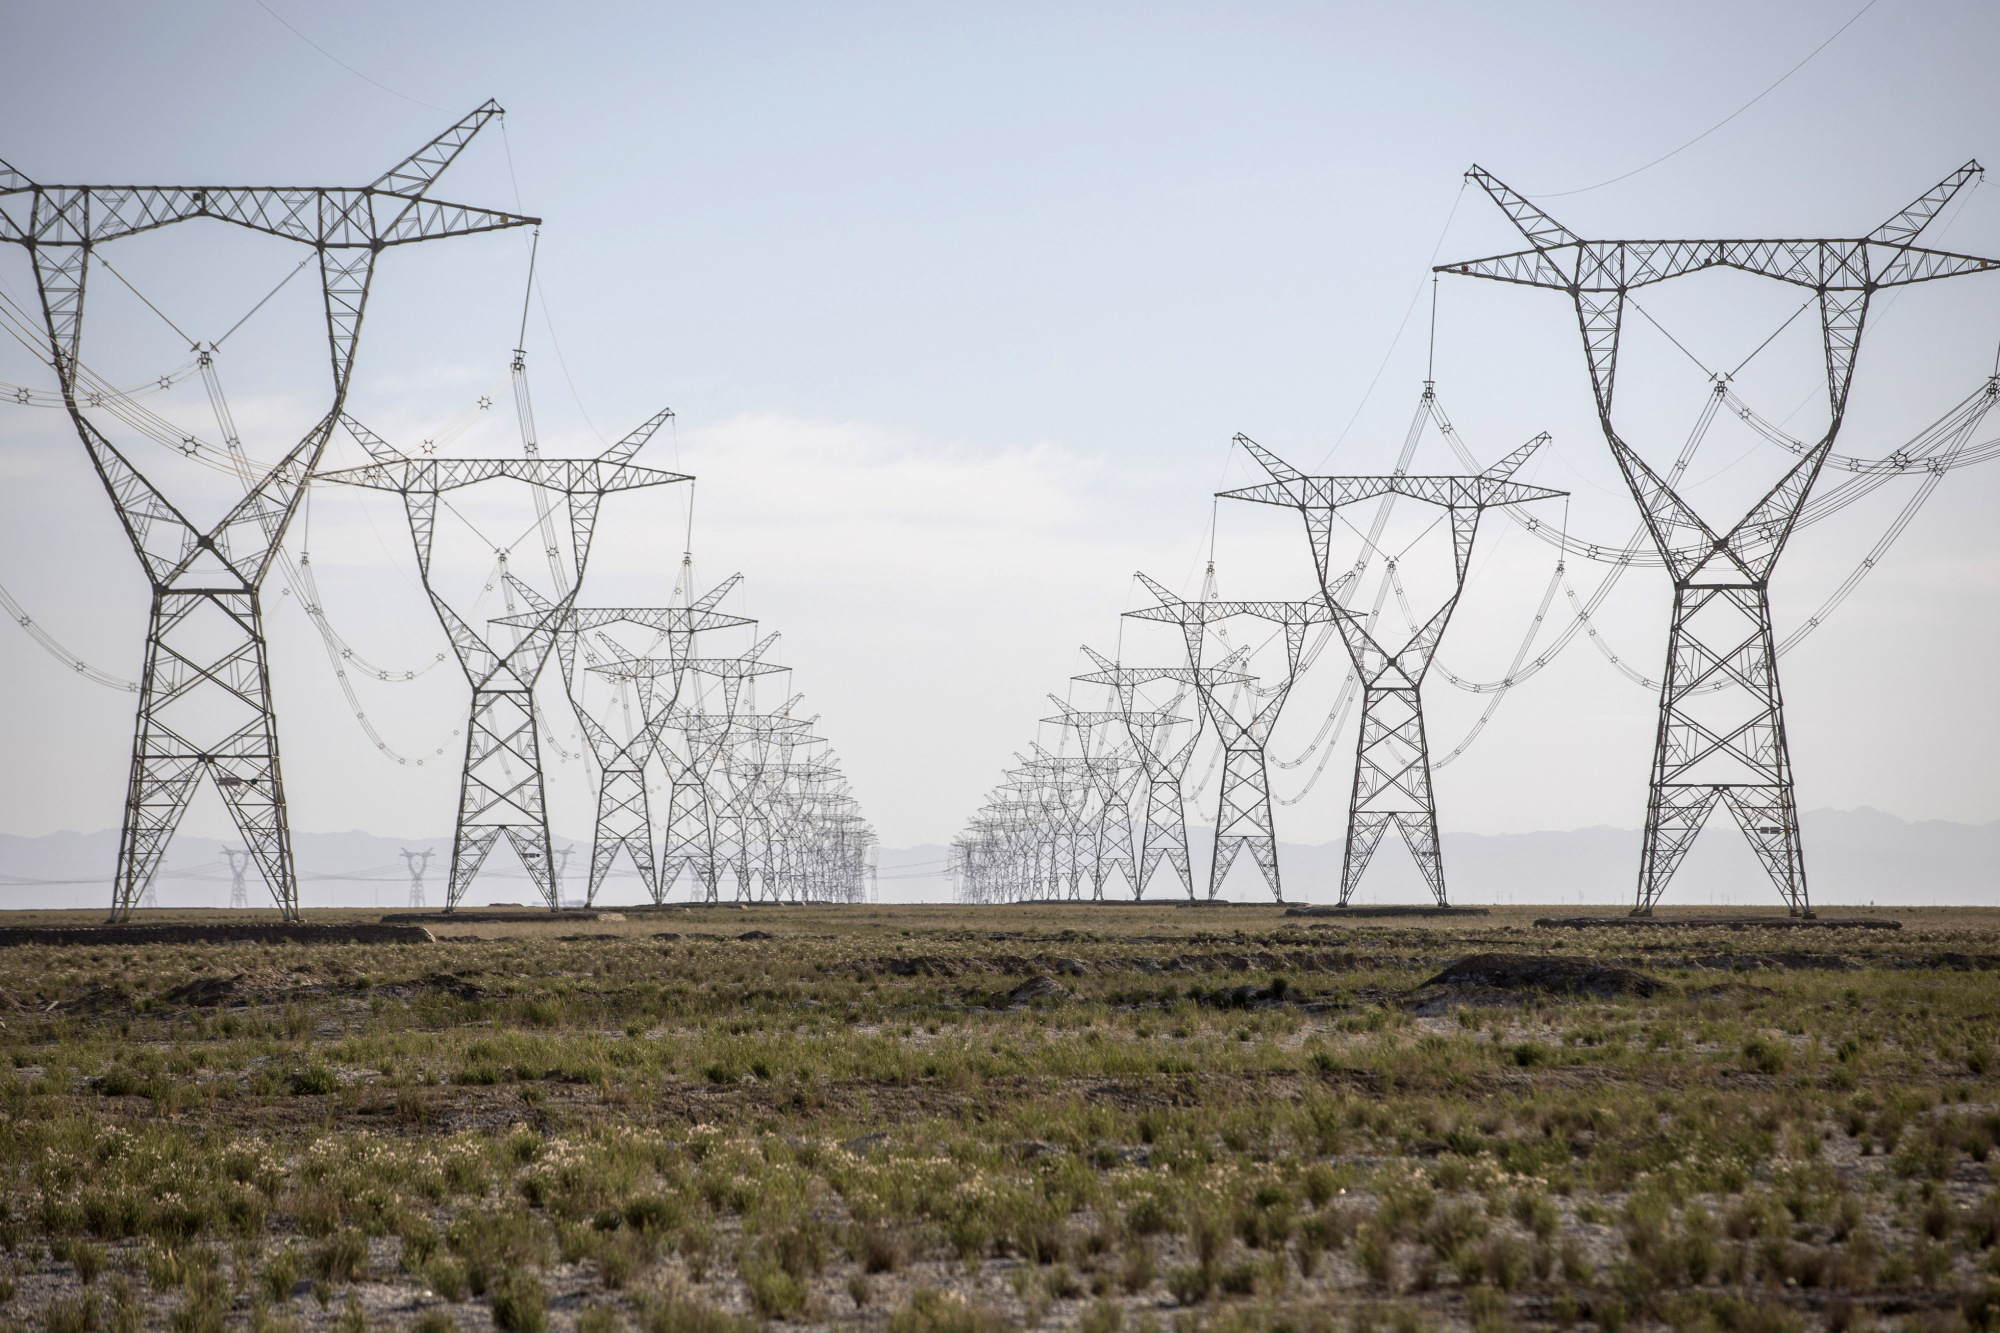 Power lines carrying electricity from the Golmud Solar Park hang from transmission towers on the outskirts of Golmud, Qinghai province, China, on Wednesday, July 25, 2018.